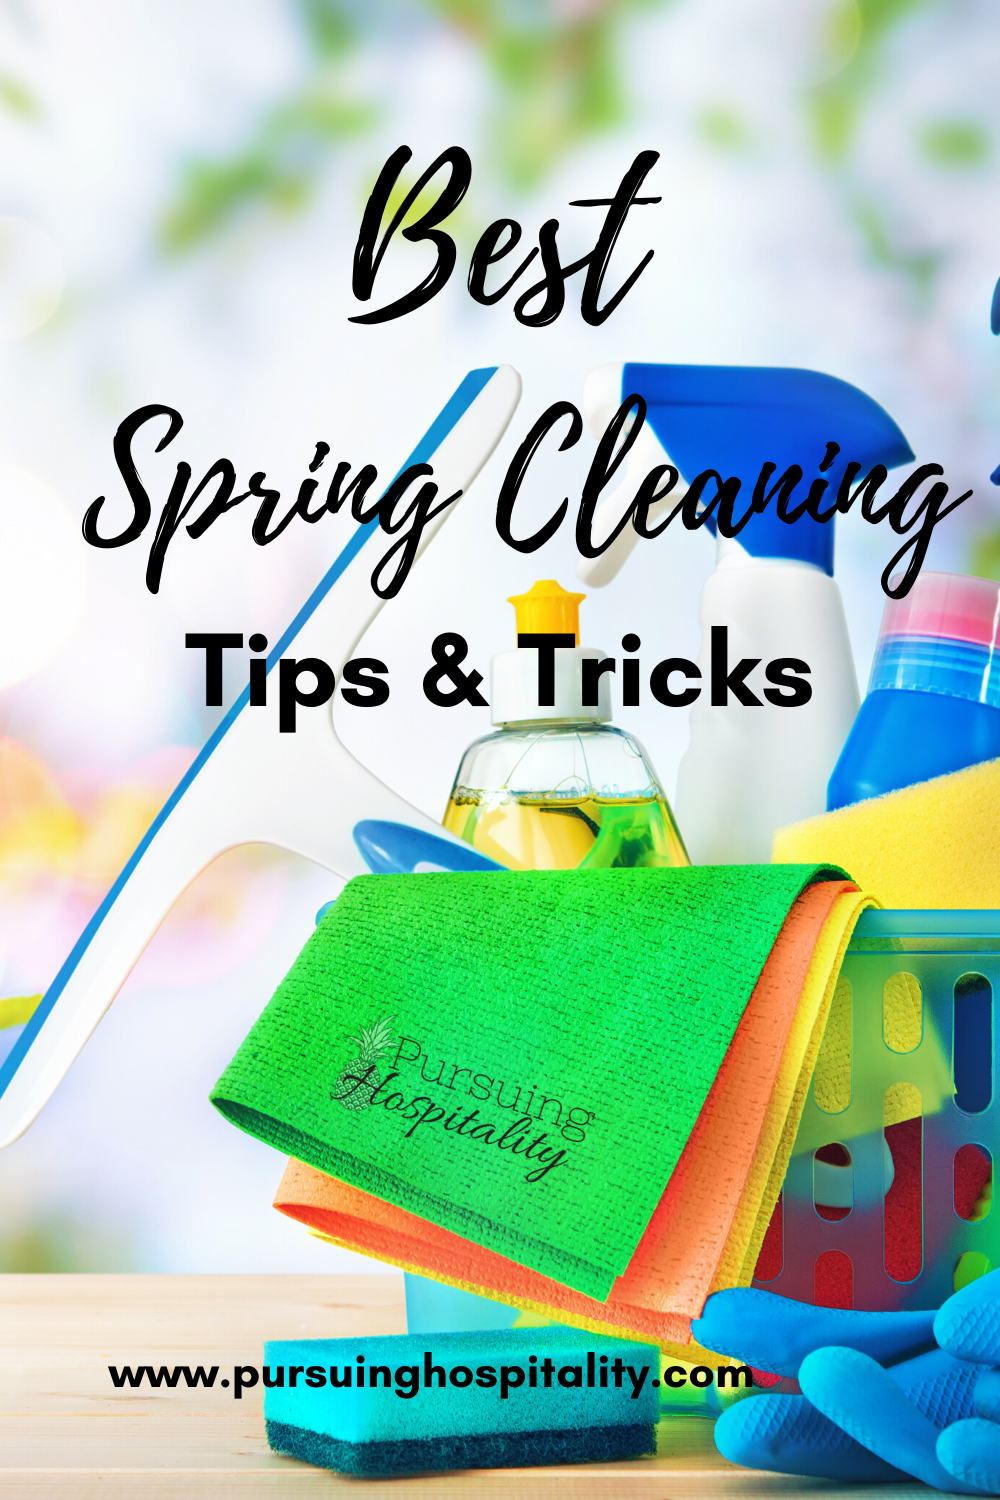 Best spring Cleaning Tips & Tricks